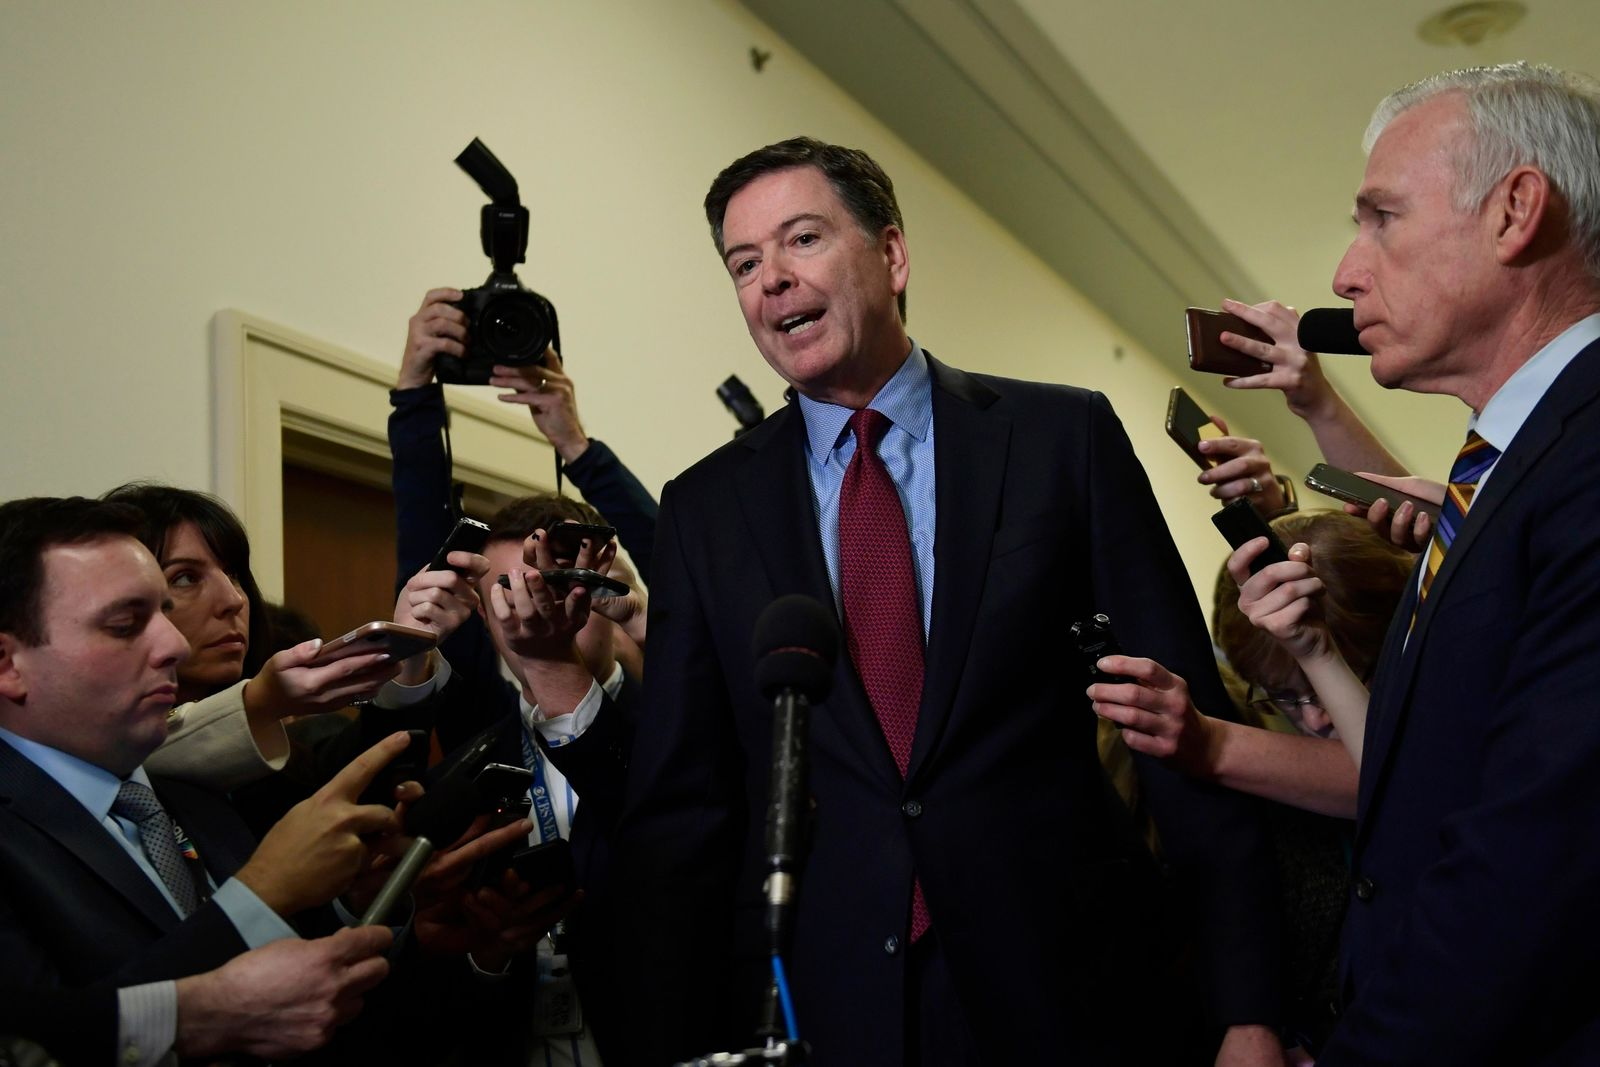 FILE – Former FBI Director James Comey, center, standing with his attornery David Kelley, right, speaks to reporters on Capitol Hill in Washington, Friday, Dec. 7, 2018, following his appearance before a closed-door hearing with the House Judiciary and House Oversight committees. (AP Photo/Susan Walsh)